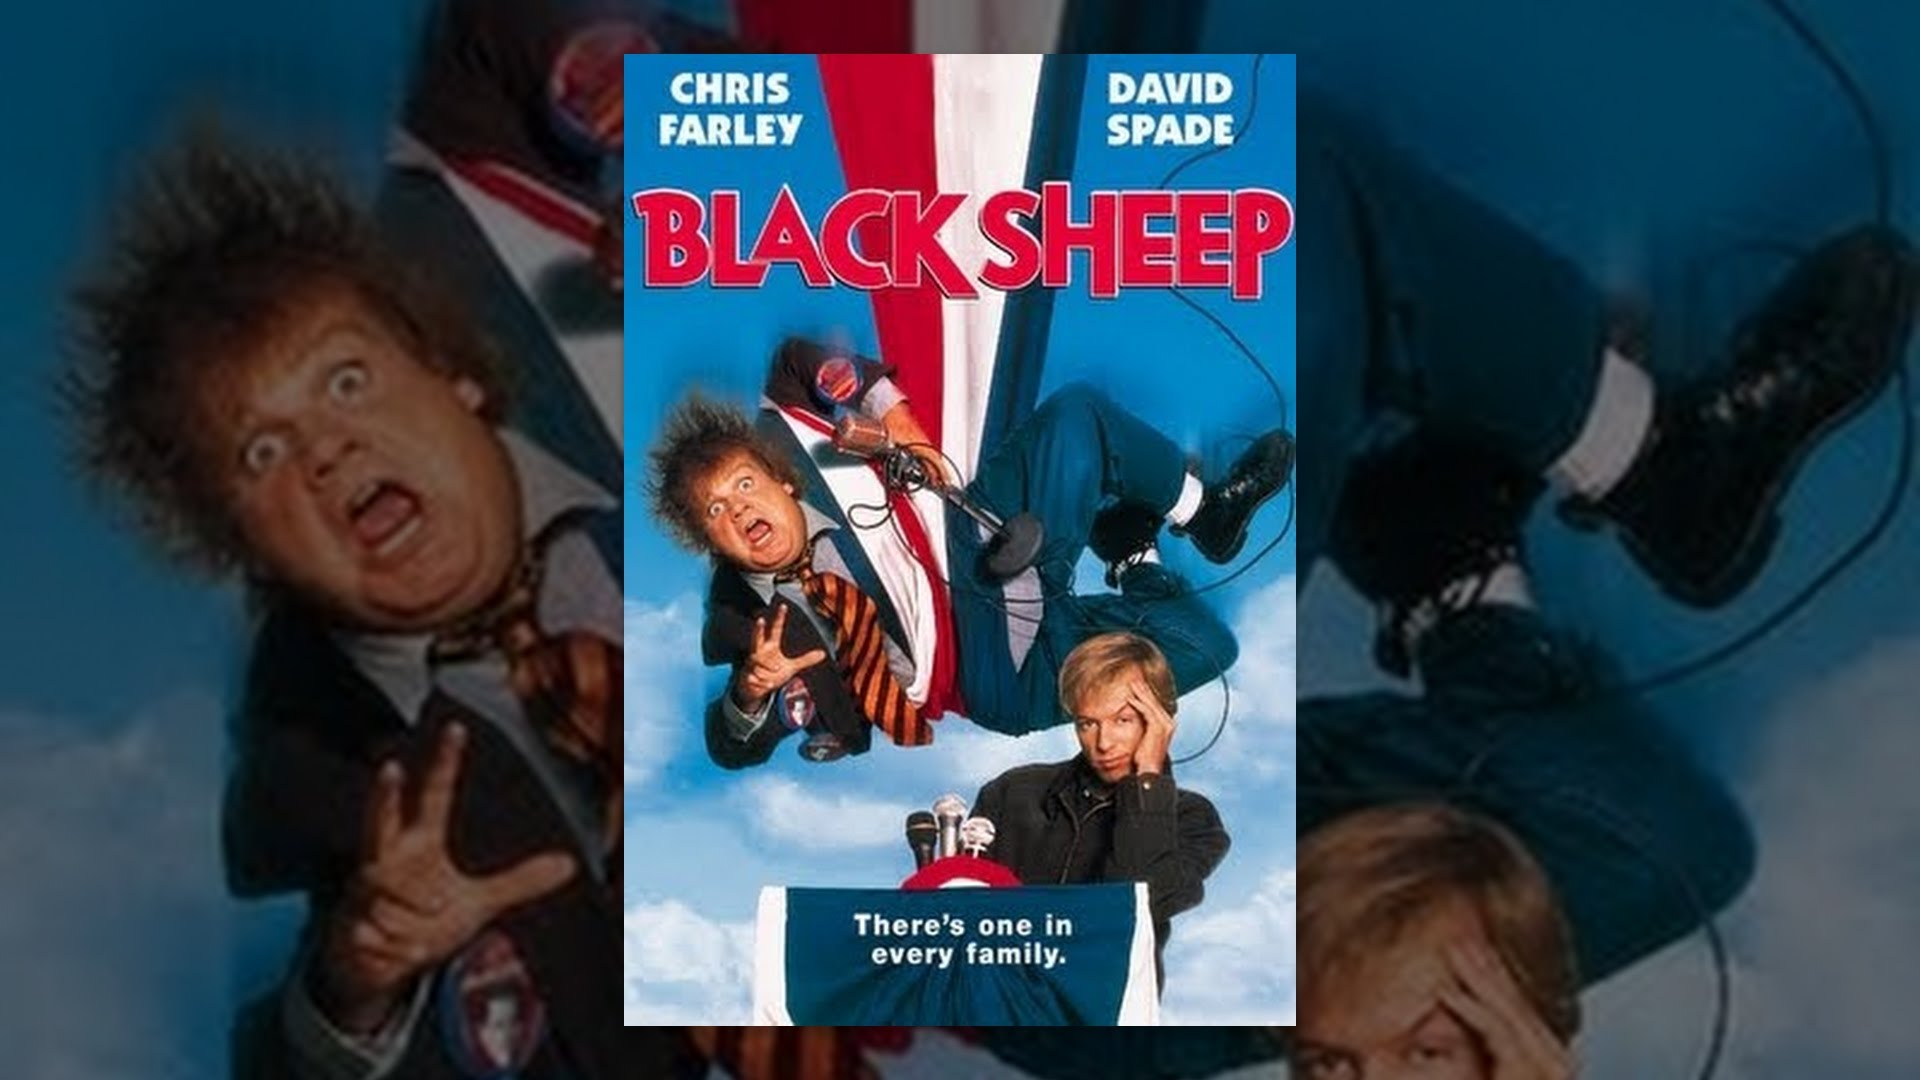 Black sheep online release date in Melbourne